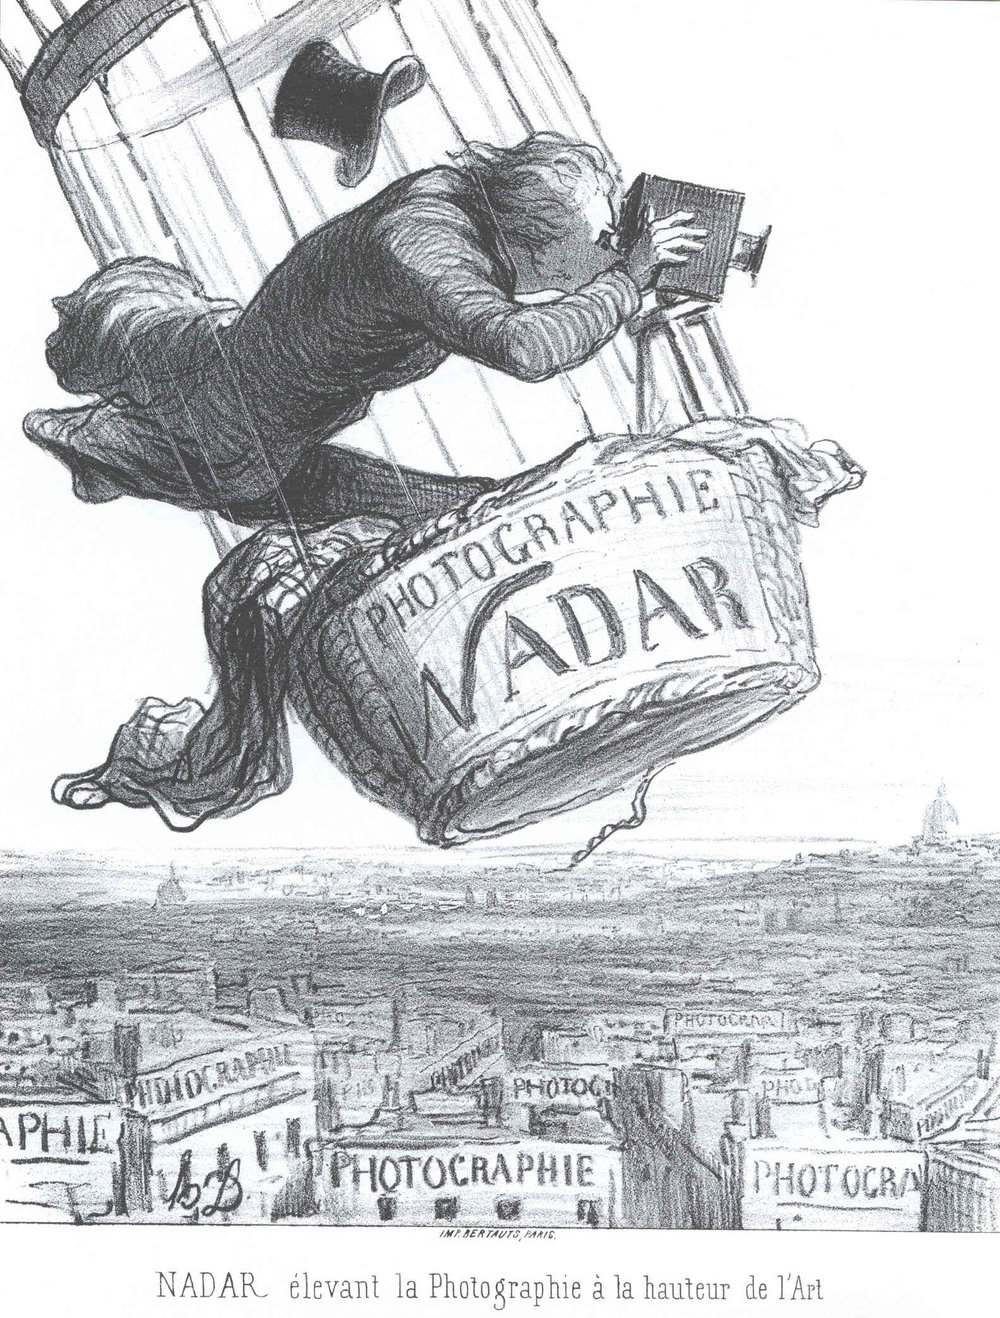 "This cartoon suggests that Nadar, famous for photographing Paris from a hot air balloon, would go to any lengths to ""elevate photography to a high art."""